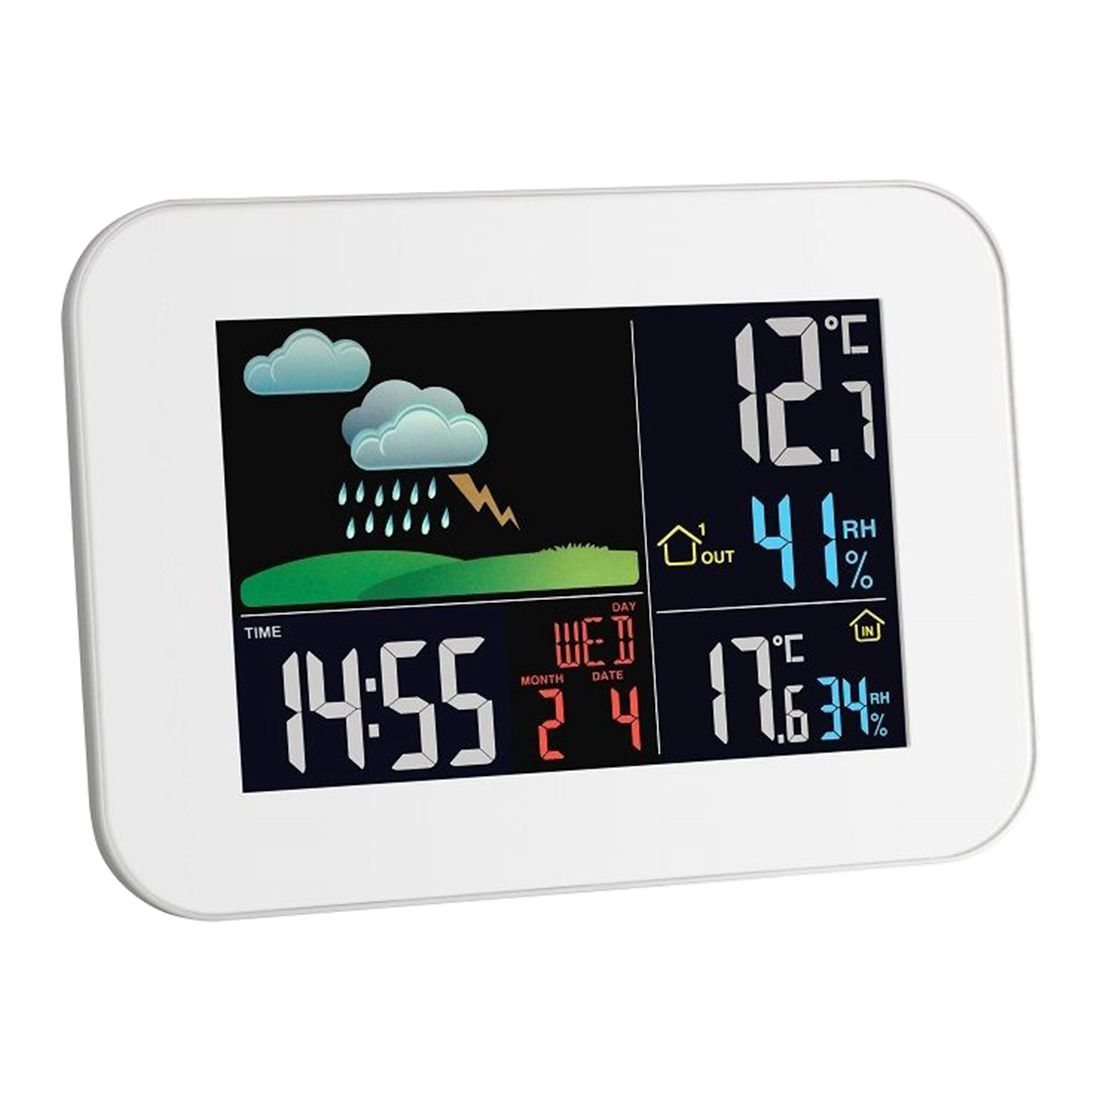 Wireless weather station Weather forecast Thermometer Hygrometer Indoor climate,white<br>